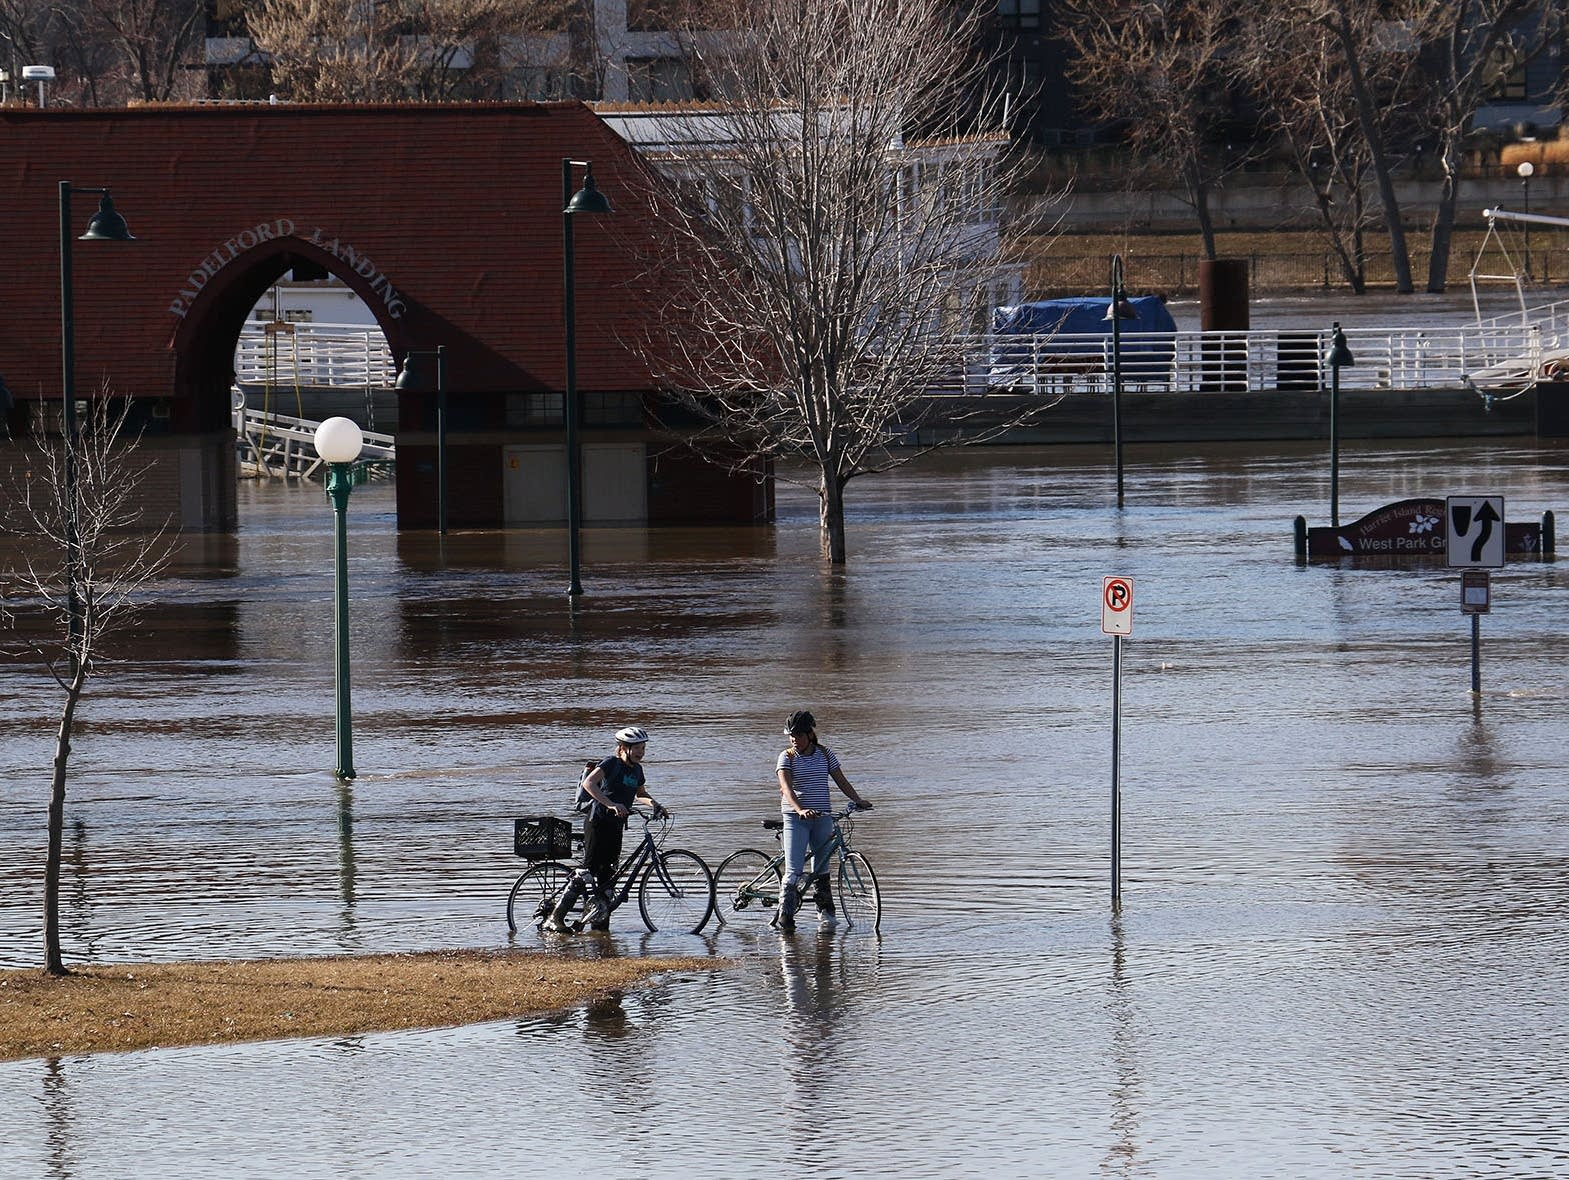 The Mississippi River overflows its banks in St. Paul